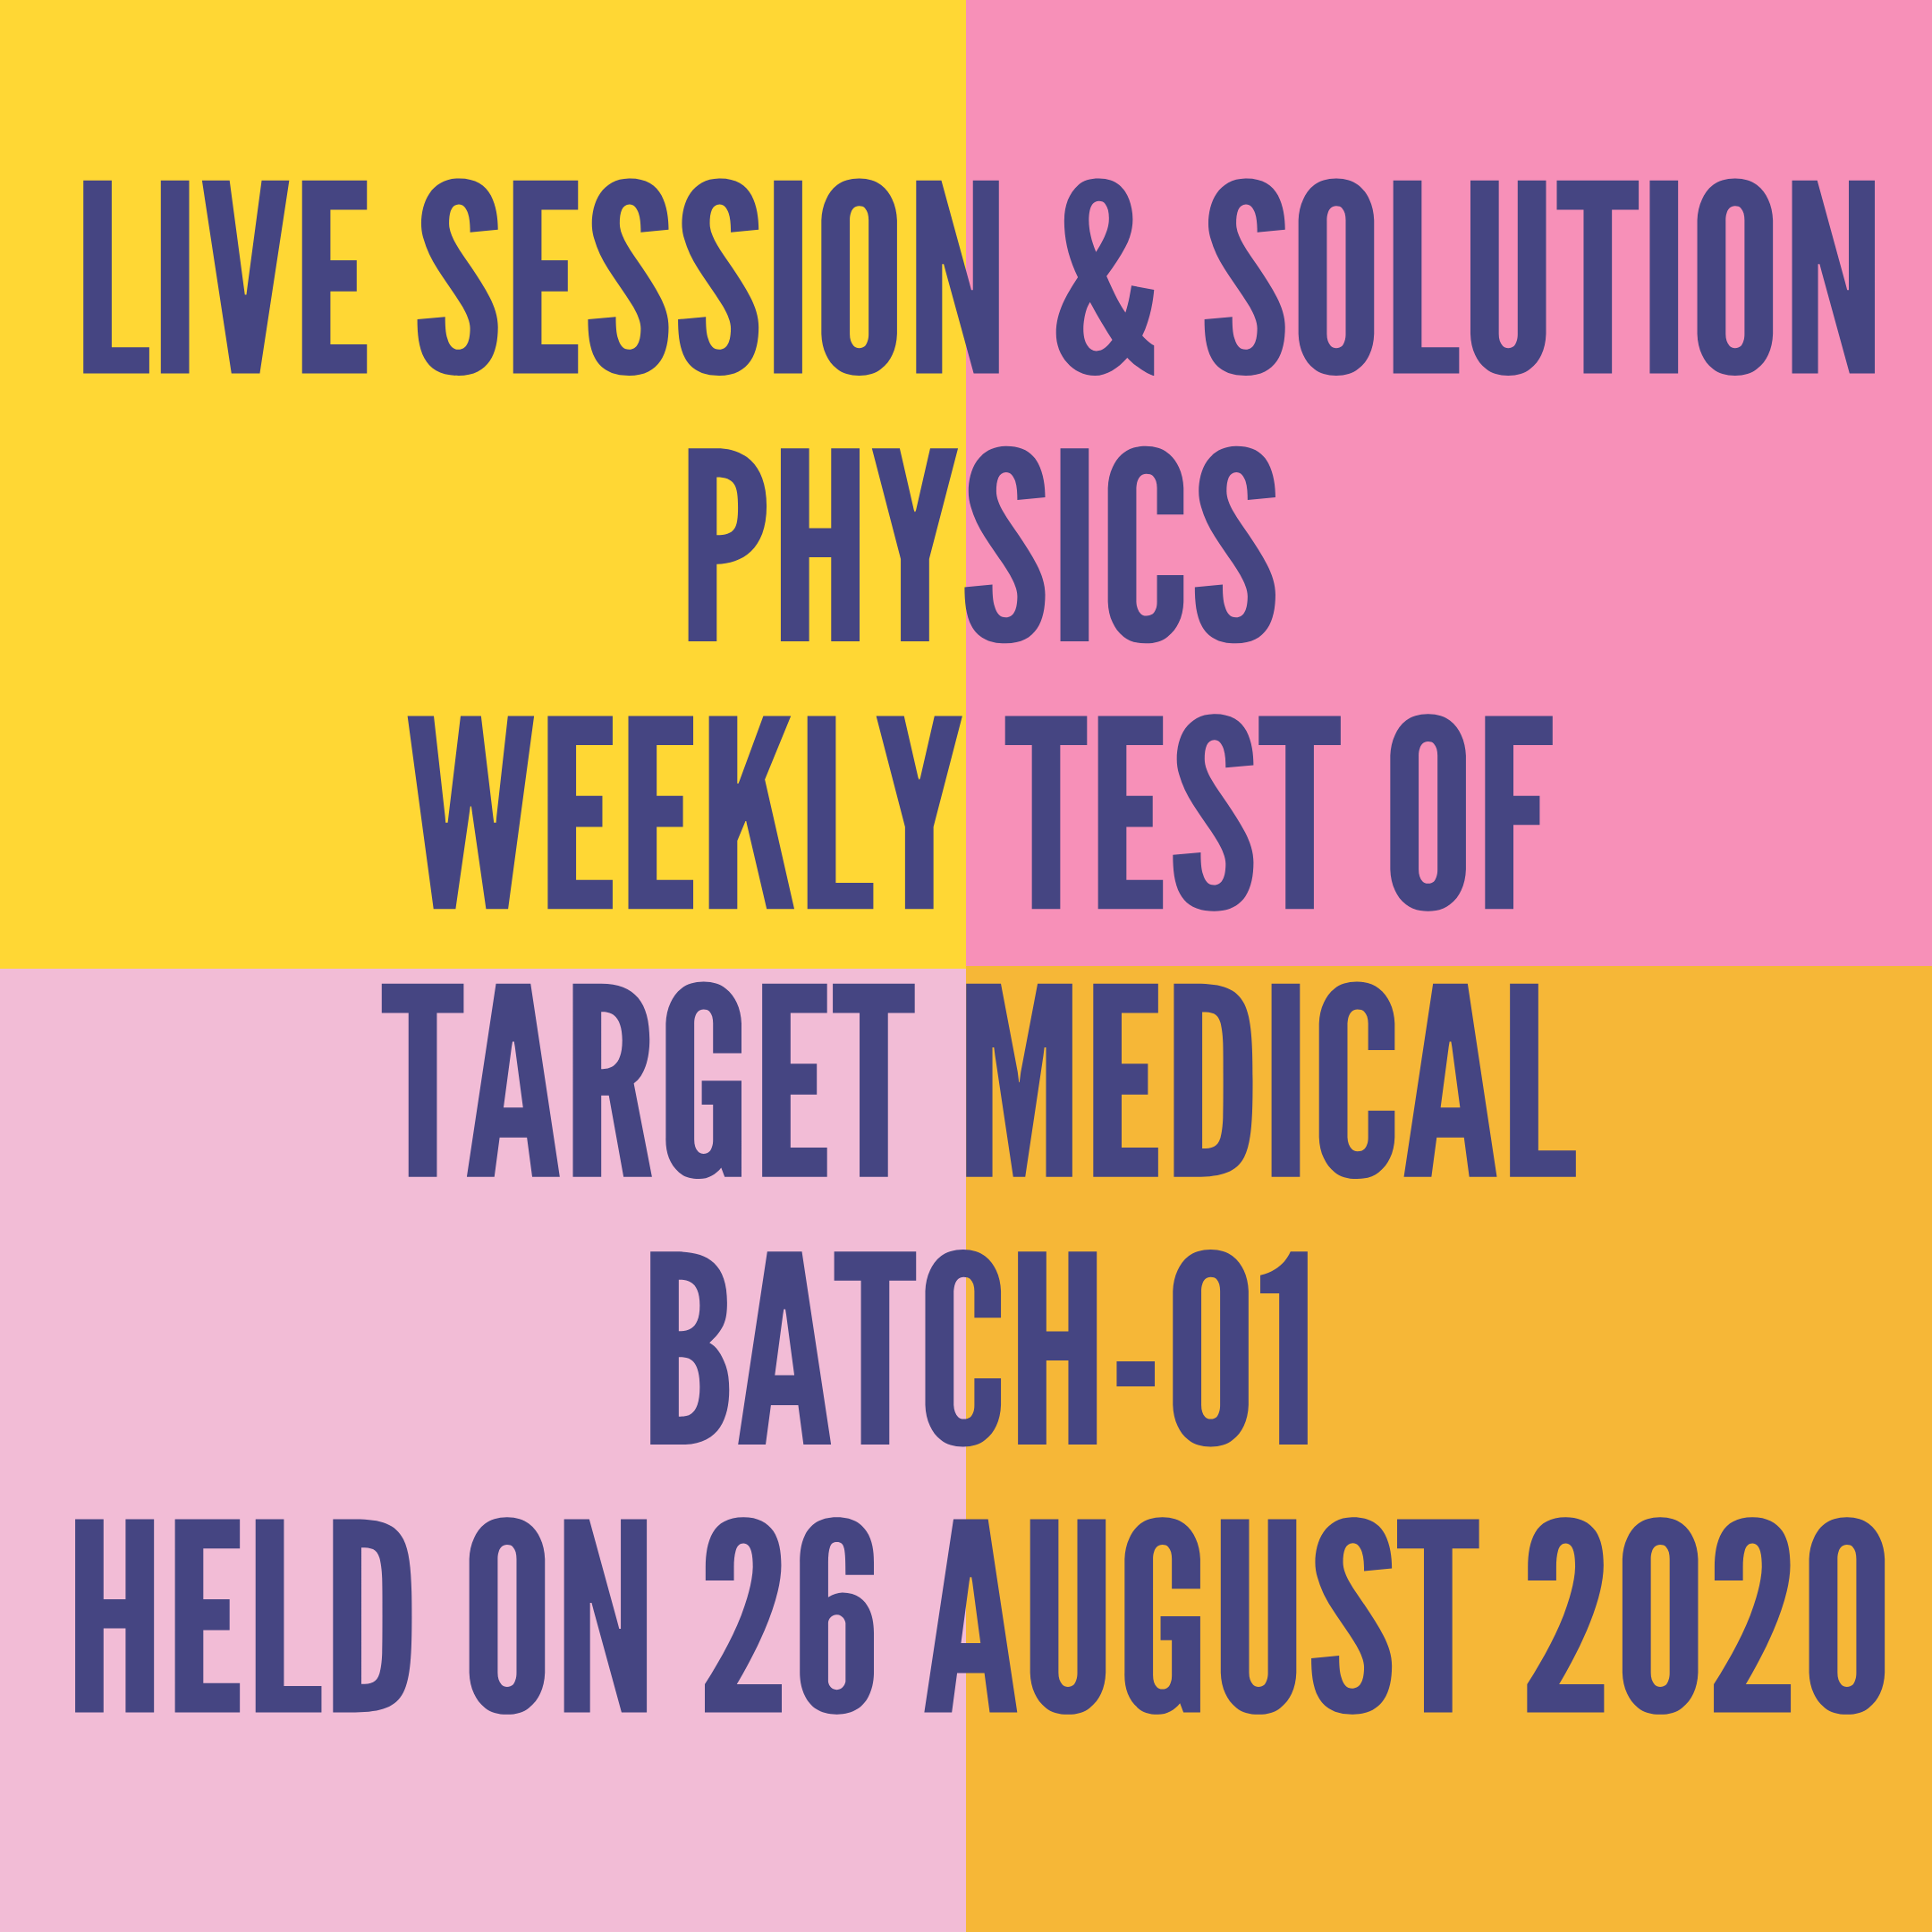 LIVE SESSION & SOLUTION PHYSICS WEEKLY TEST OF TARGET MEDICAL BATCH-01 HELD ON 26 AUGUST 2020